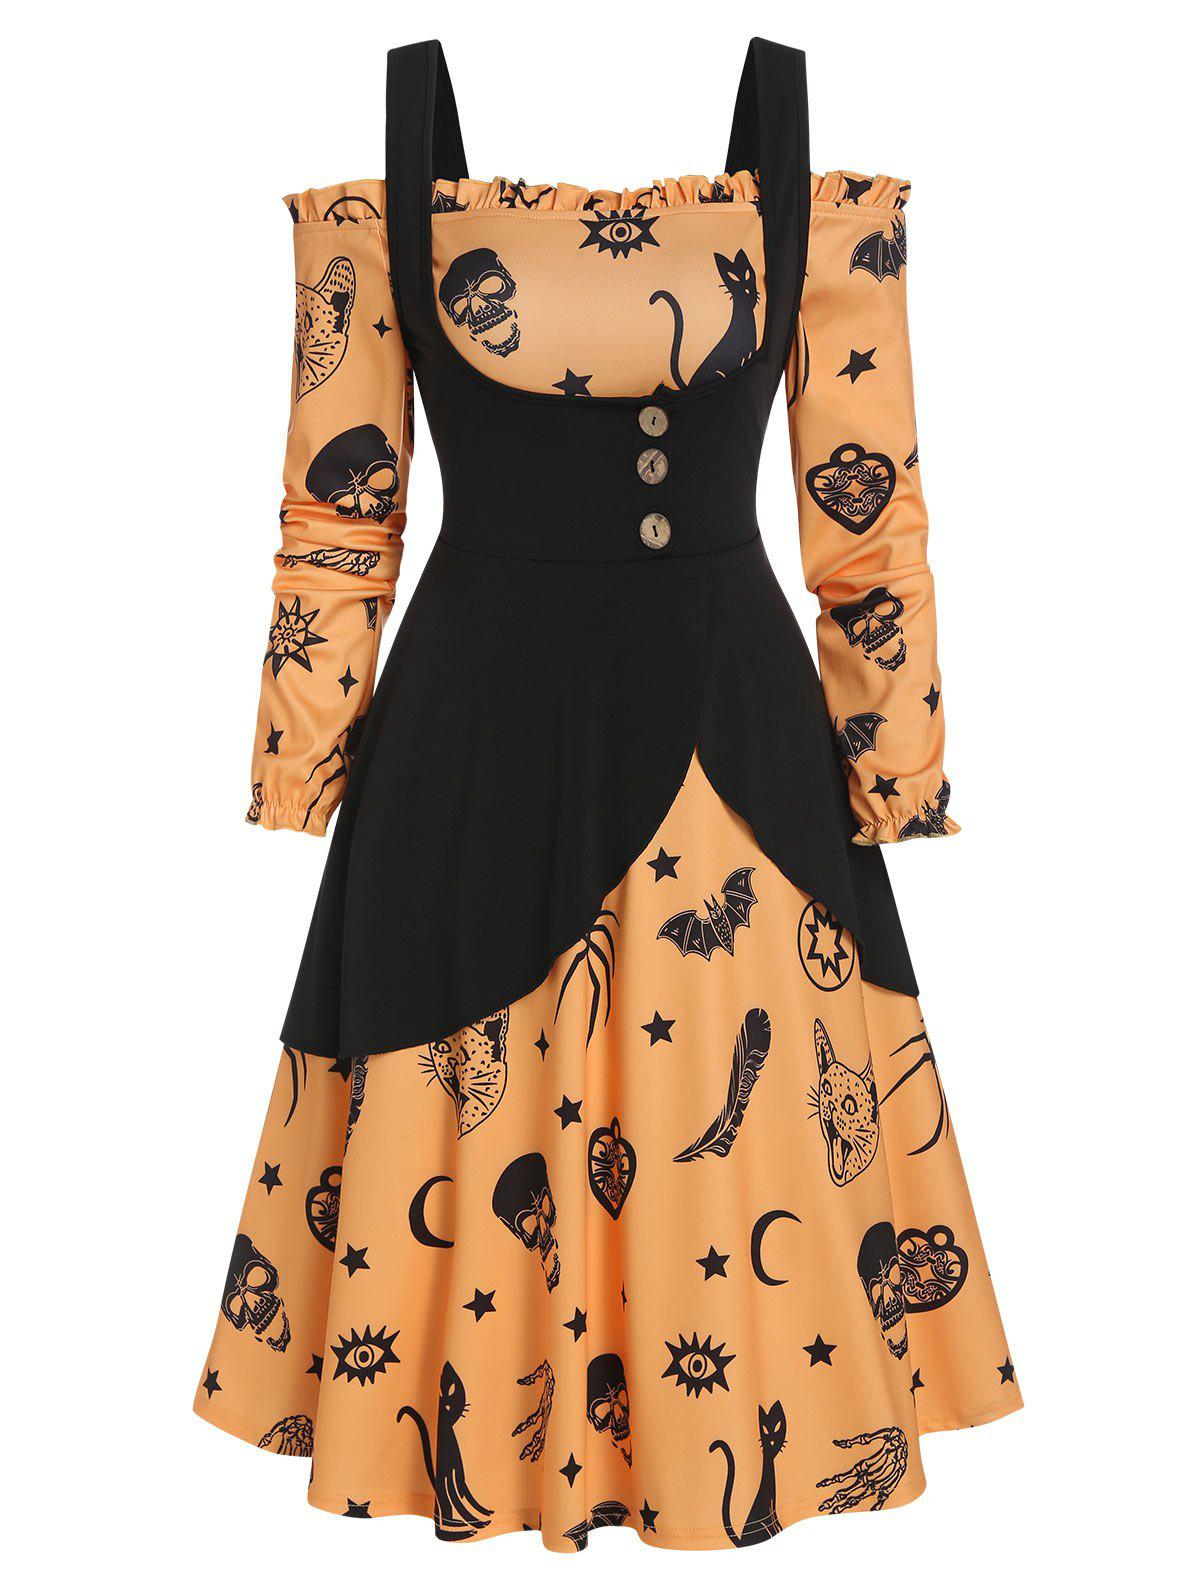 Halloween Printed Ruffled Trim Button Two Piece Dress - multicolor 3XL